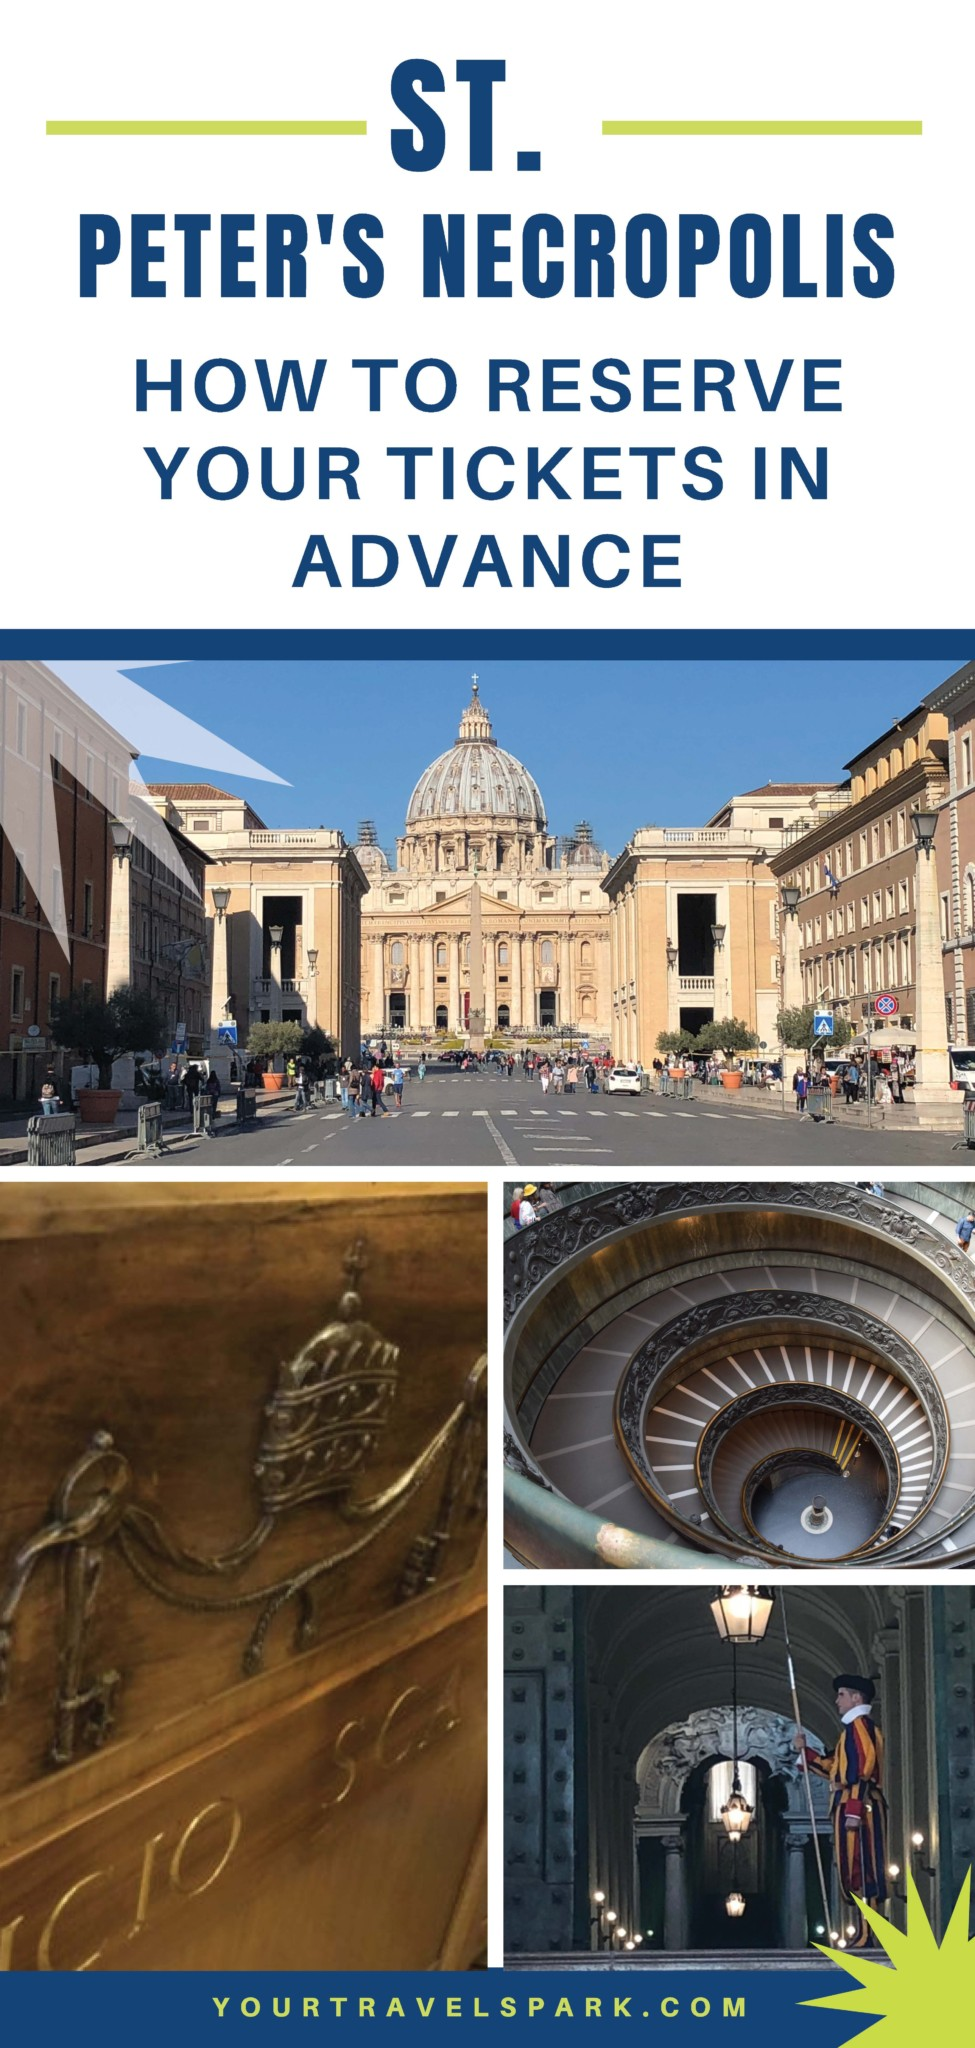 Visiting St. Peter's Tomb or St. Peter's Necropolis at the Vatican is a unique experience very few people get to experience. Here is how to reserve your tickets for the Vatican Scavi Tour when in Rome, Italy.